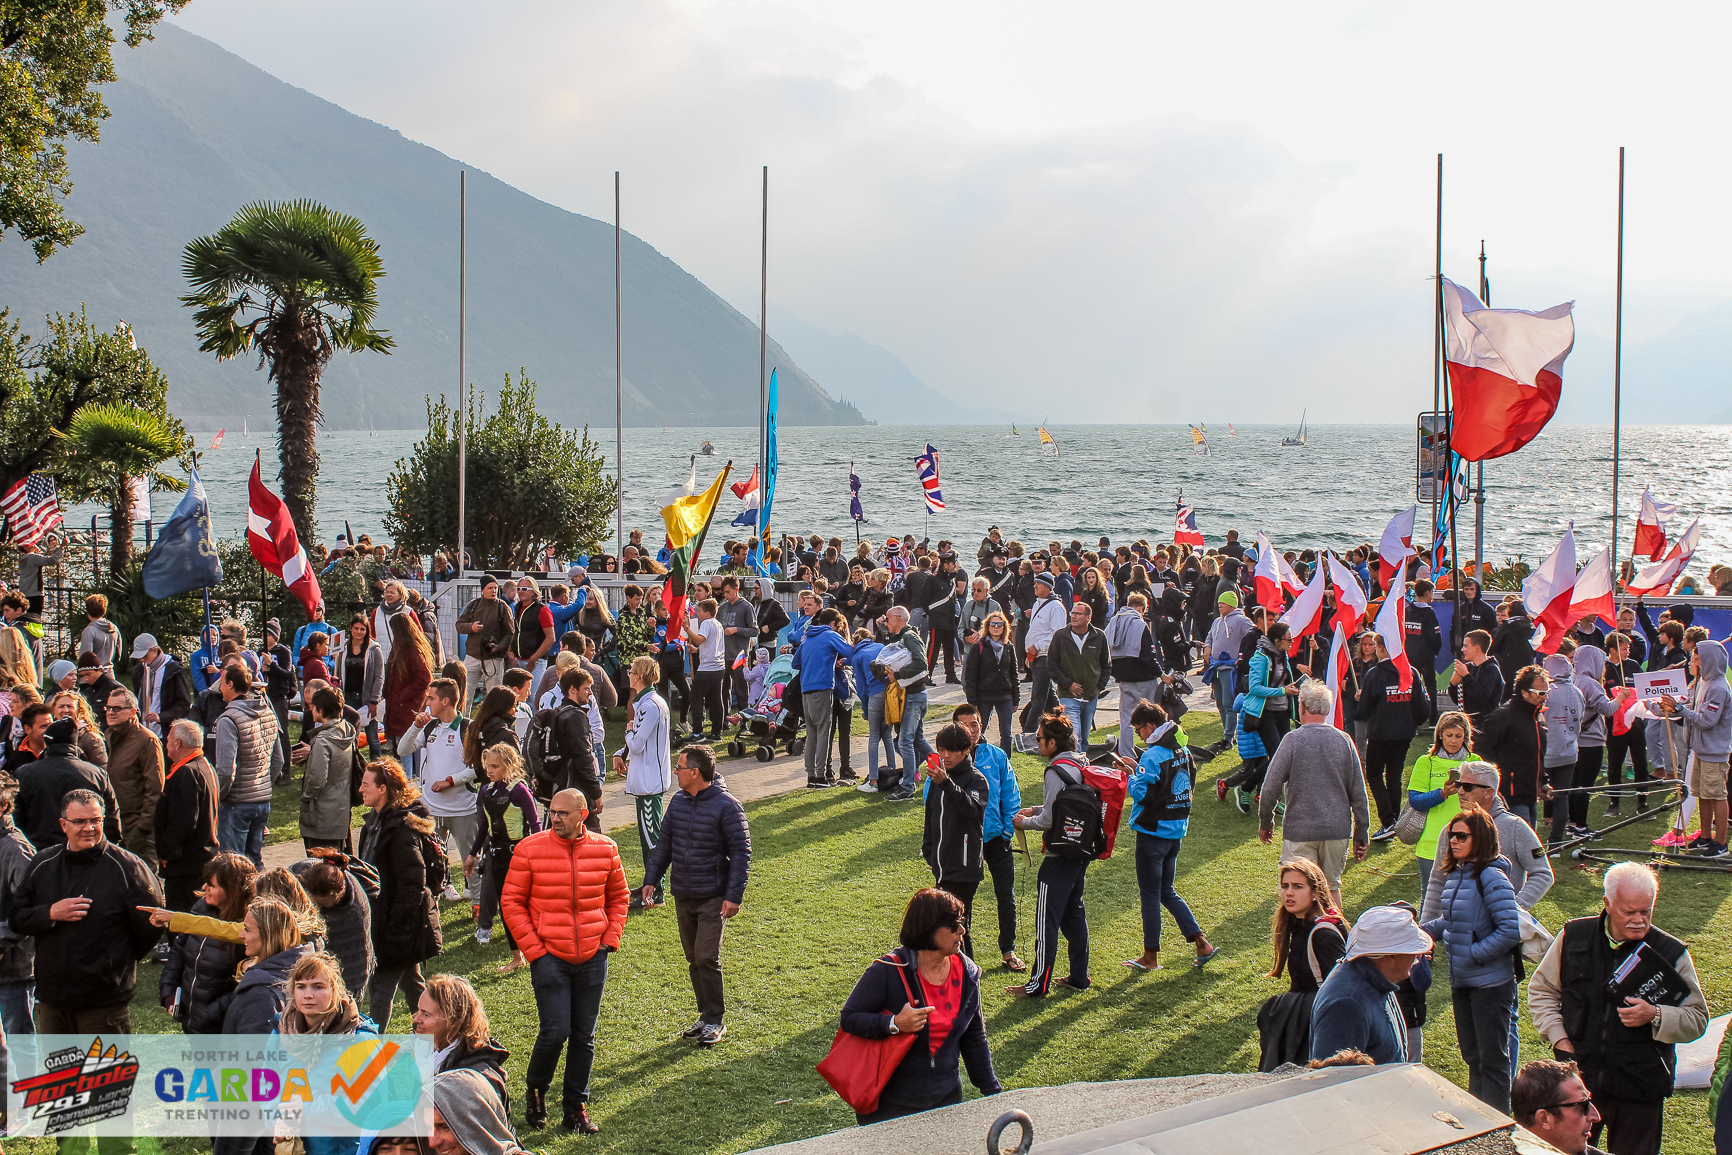 torbole293_worlds2016_garda-trentino-italy_world-of-windsurf-2-of-61